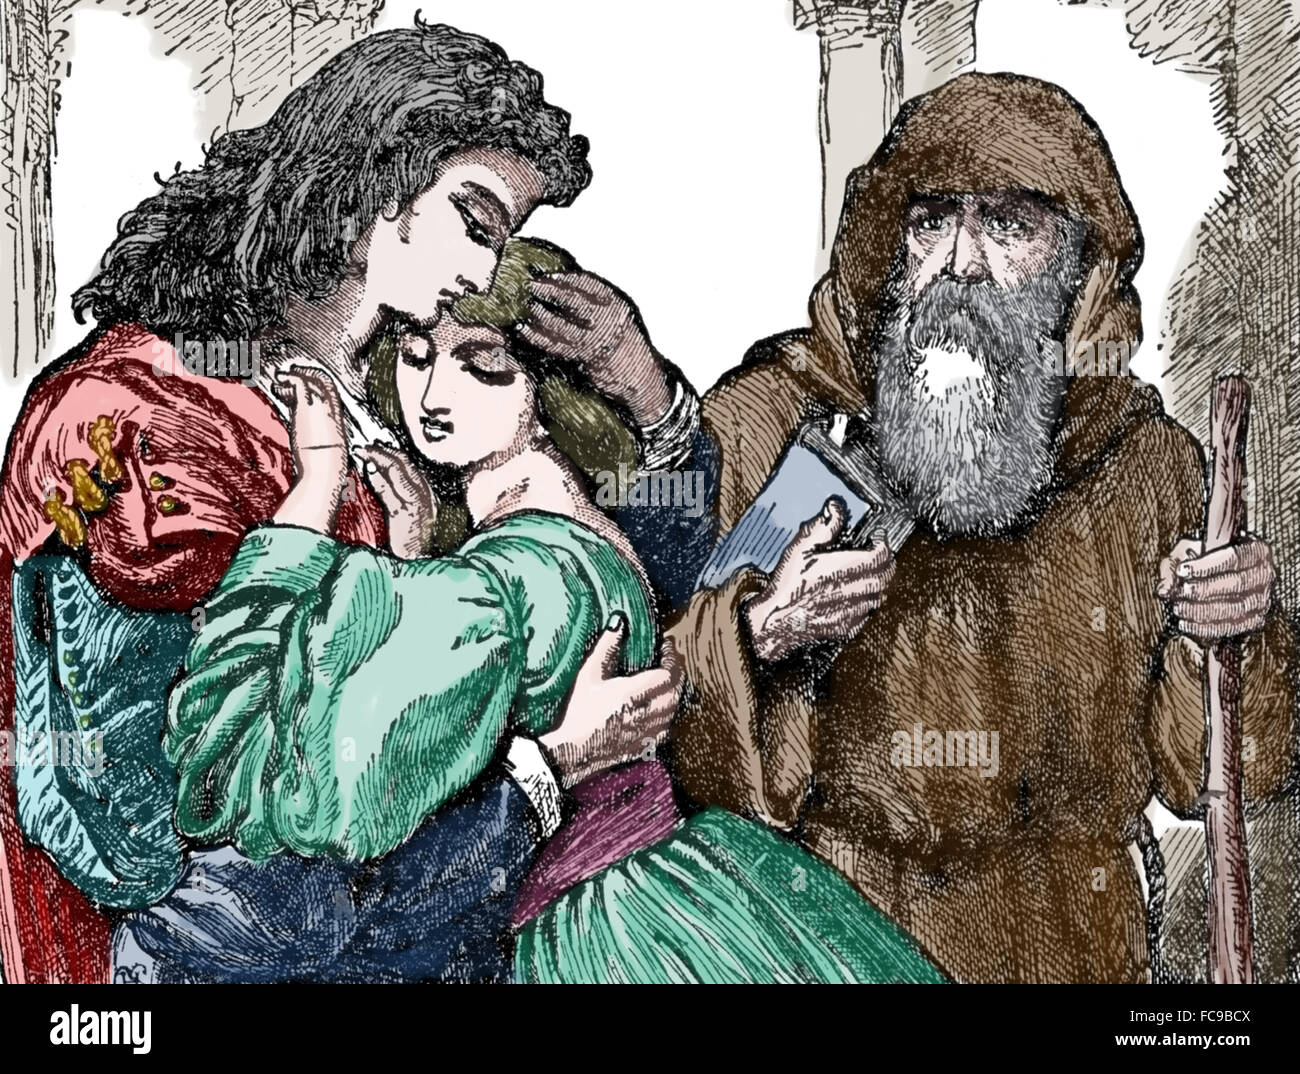 why friar lawrence is innocent in the play romeo and juliet by william shakespeare Romeo and juliet is an early tragedy by william shakespeare about two teenage star-cross'd the play has been highly praised by literary critics for its language and dramatic effect romeo, in friar lawrence's cell, ponders his life without juliet the nurse arrives with a gift from juliet as the friar.